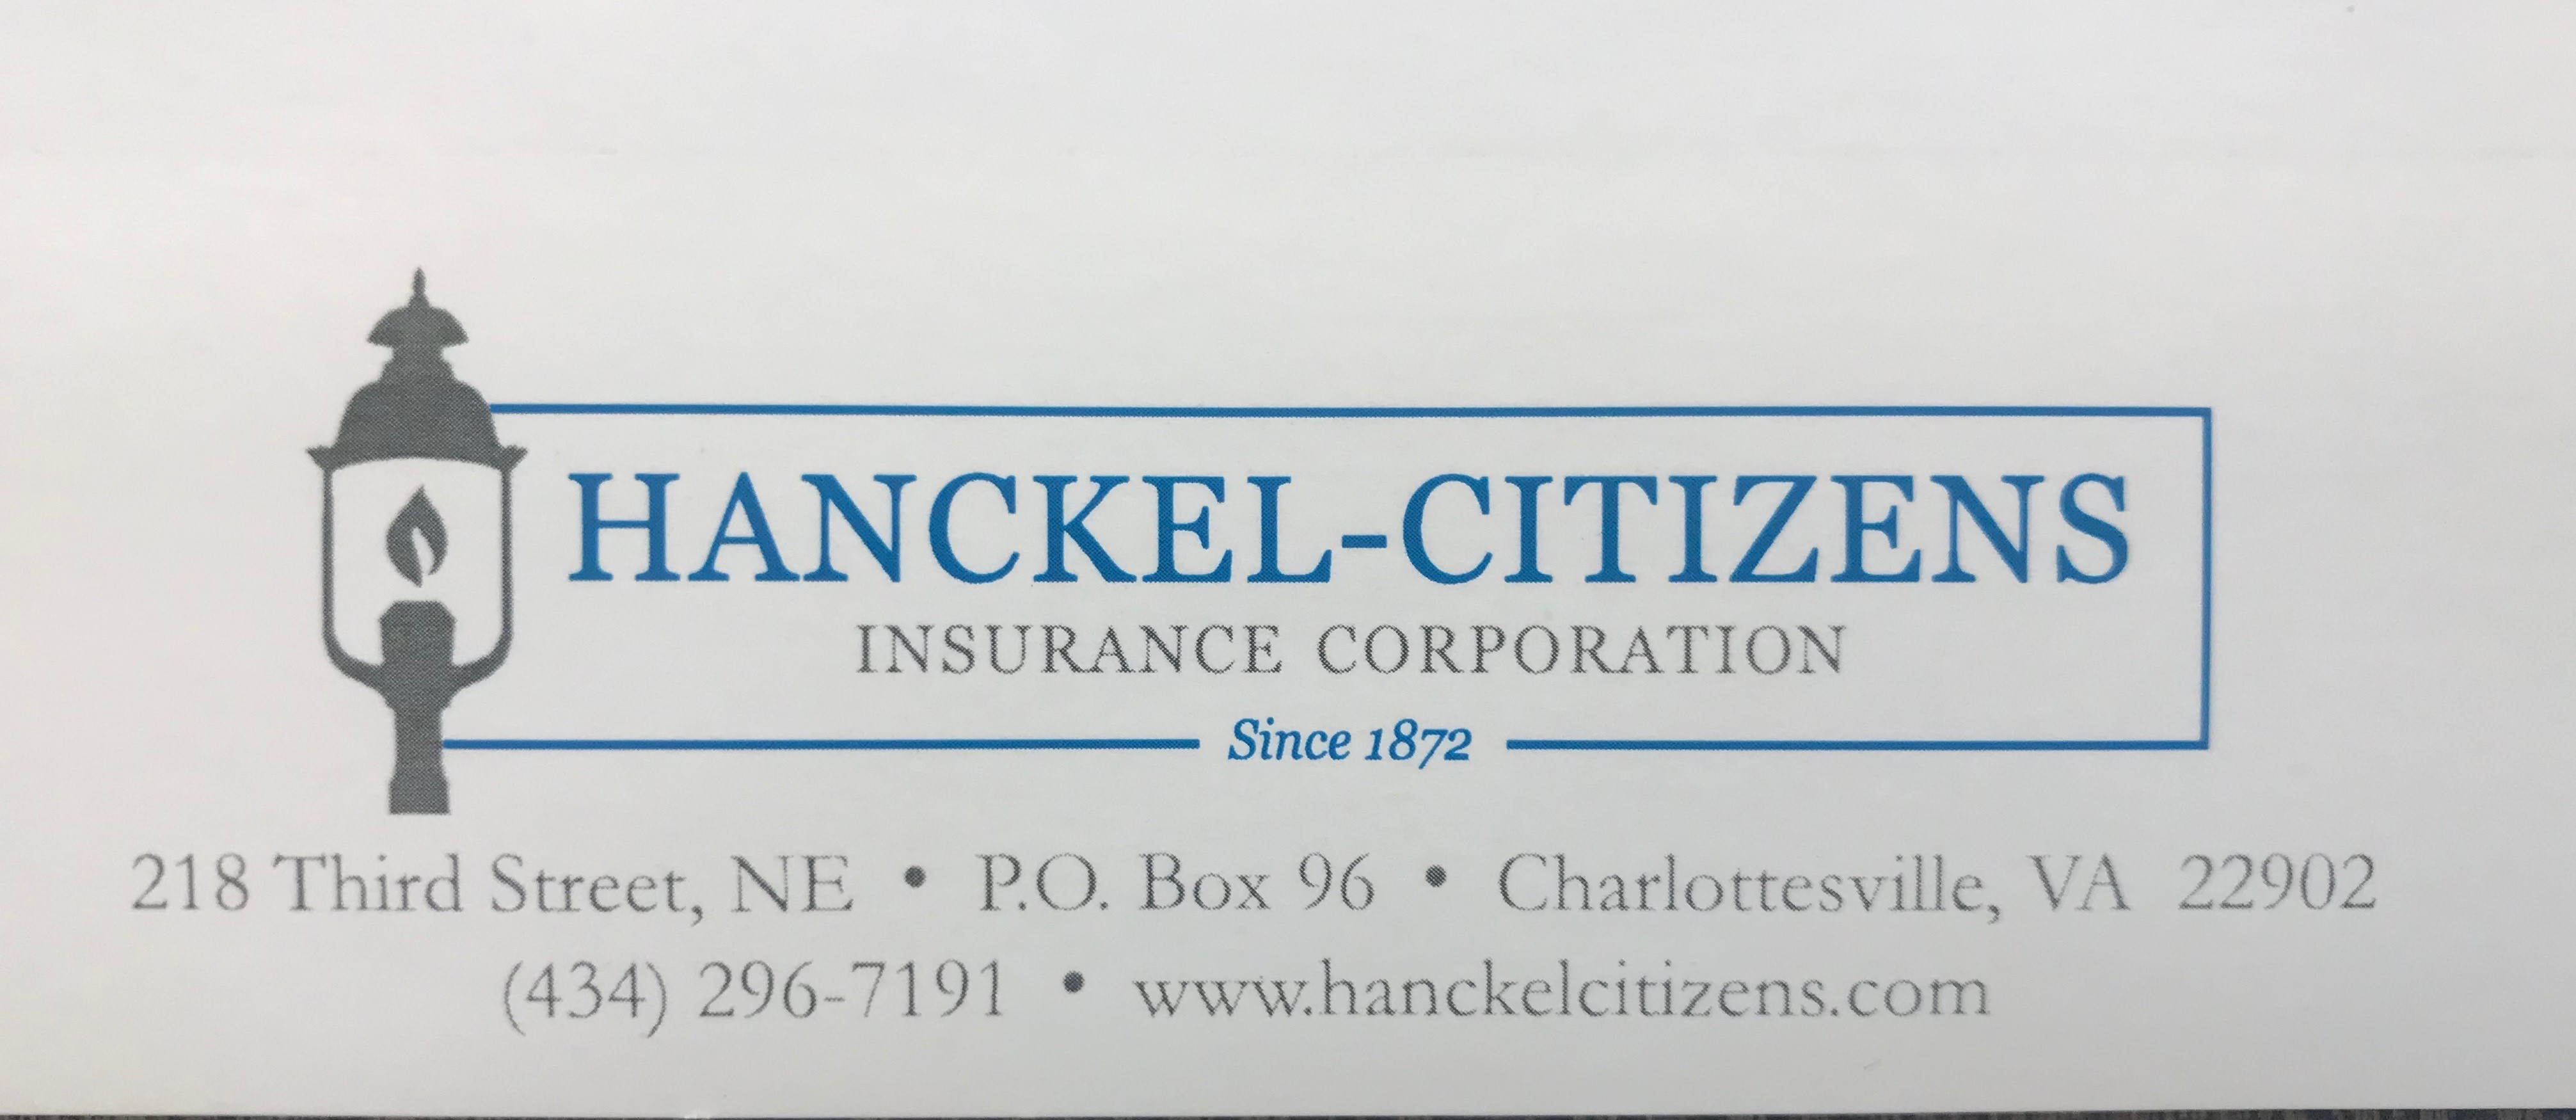 M. Hanckel-Citizens Insurance (Silver)